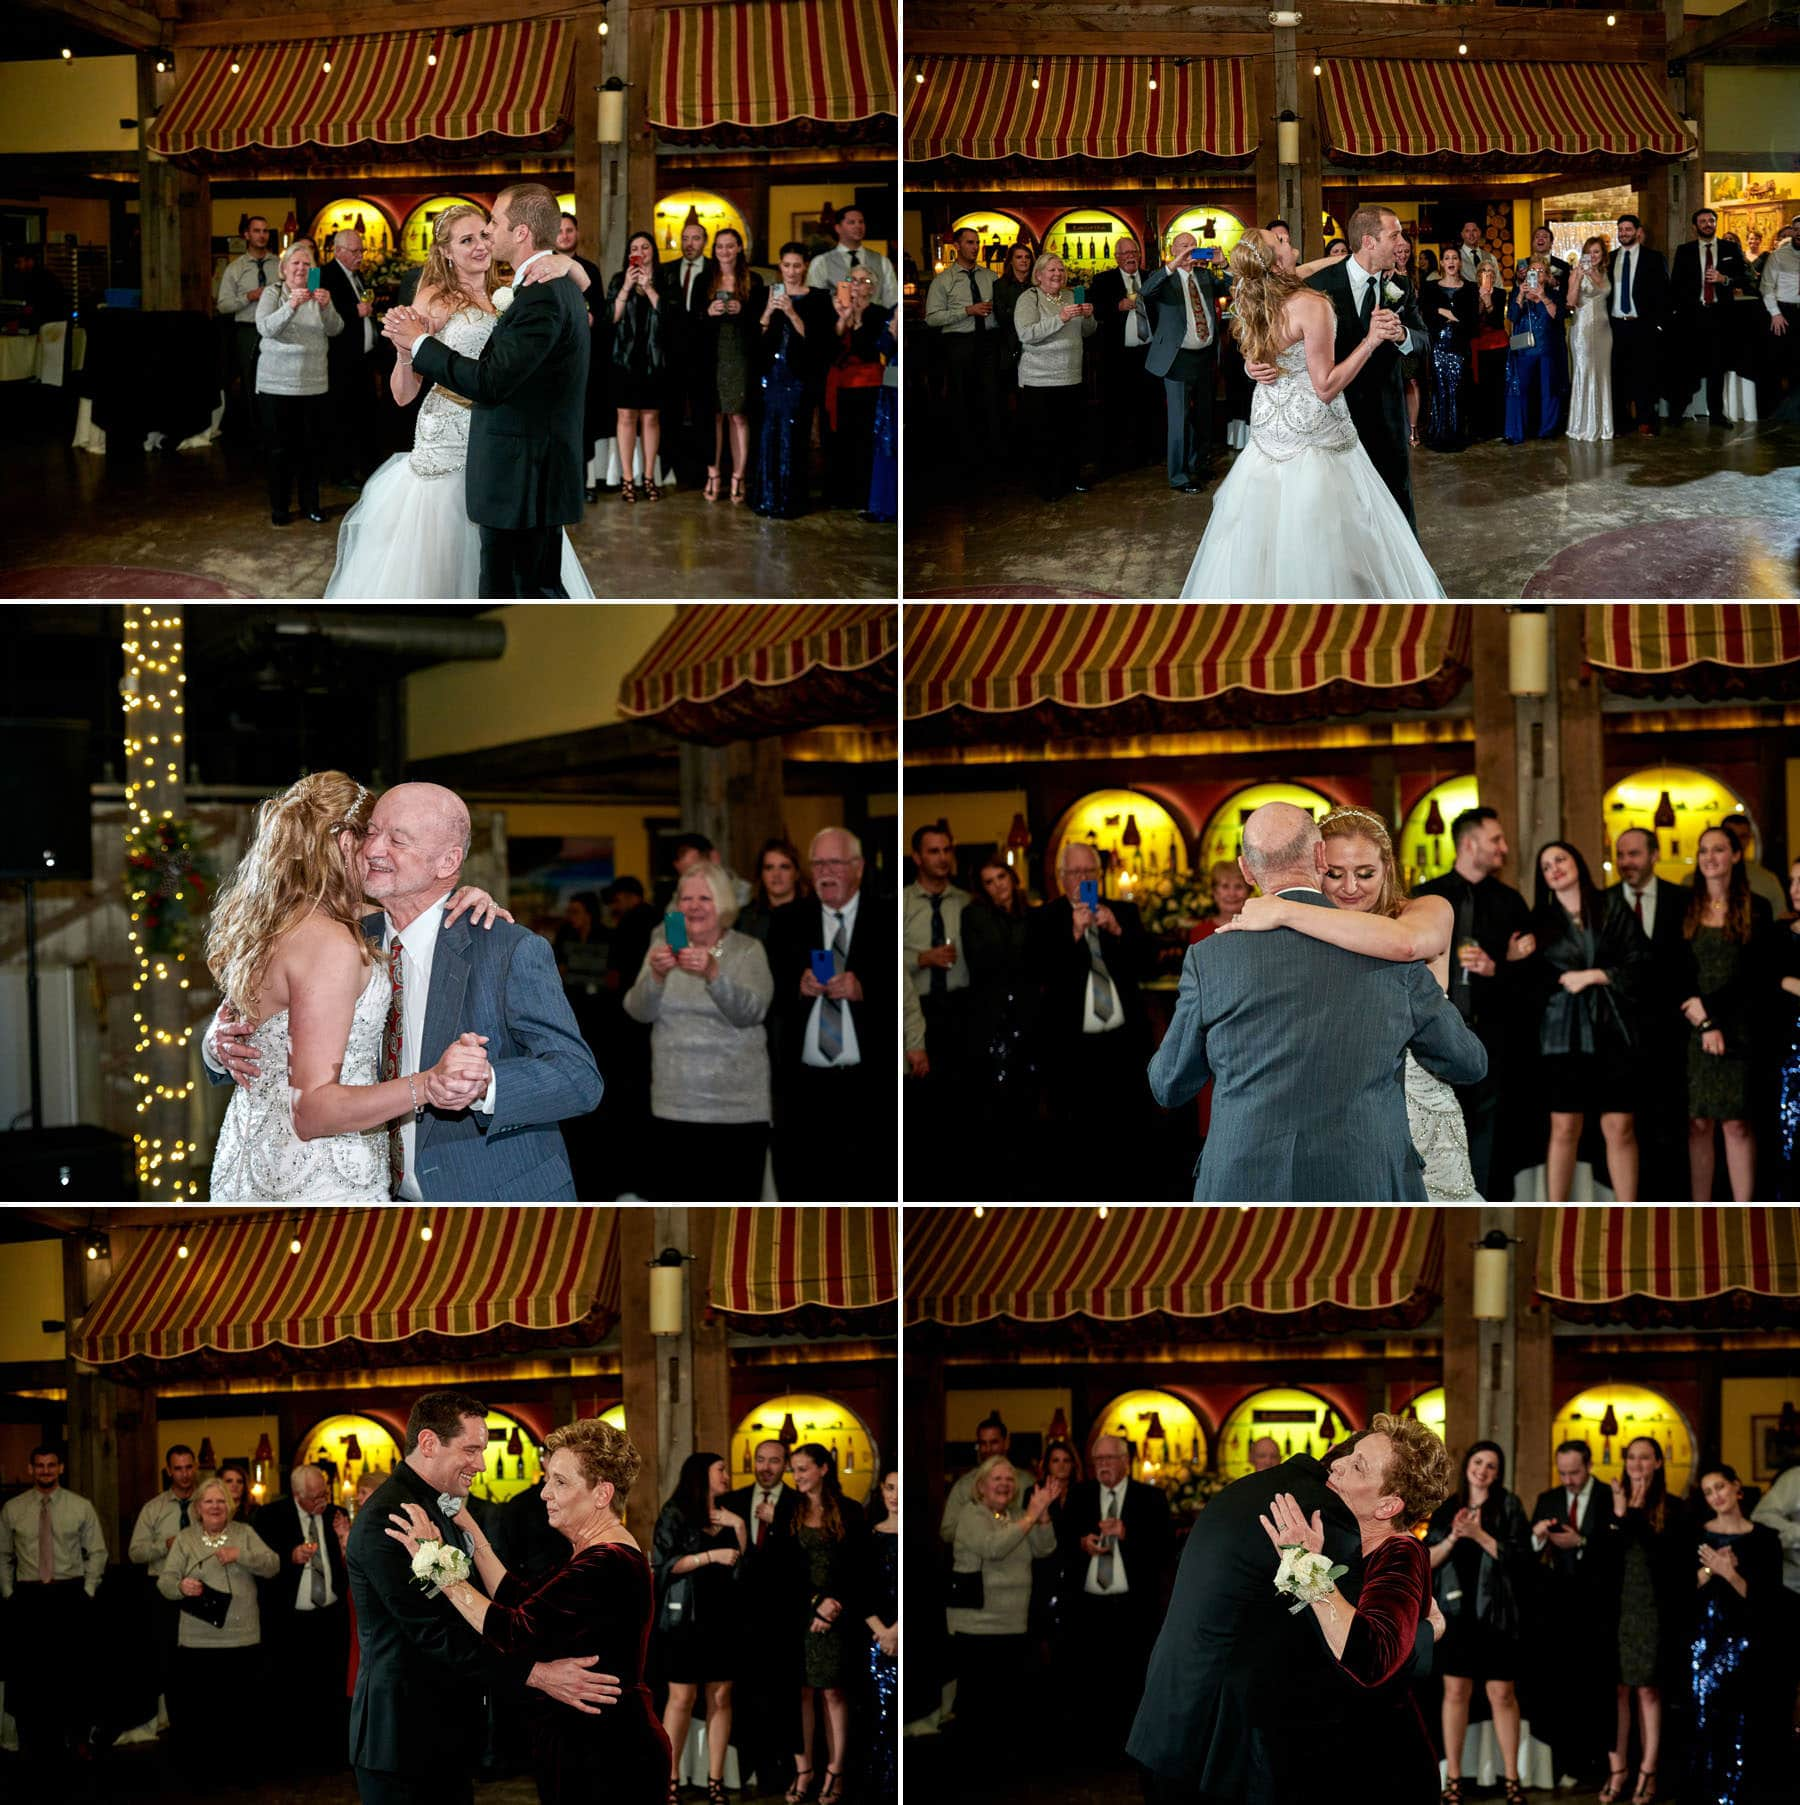 parent dance wedding photos at laurita winery